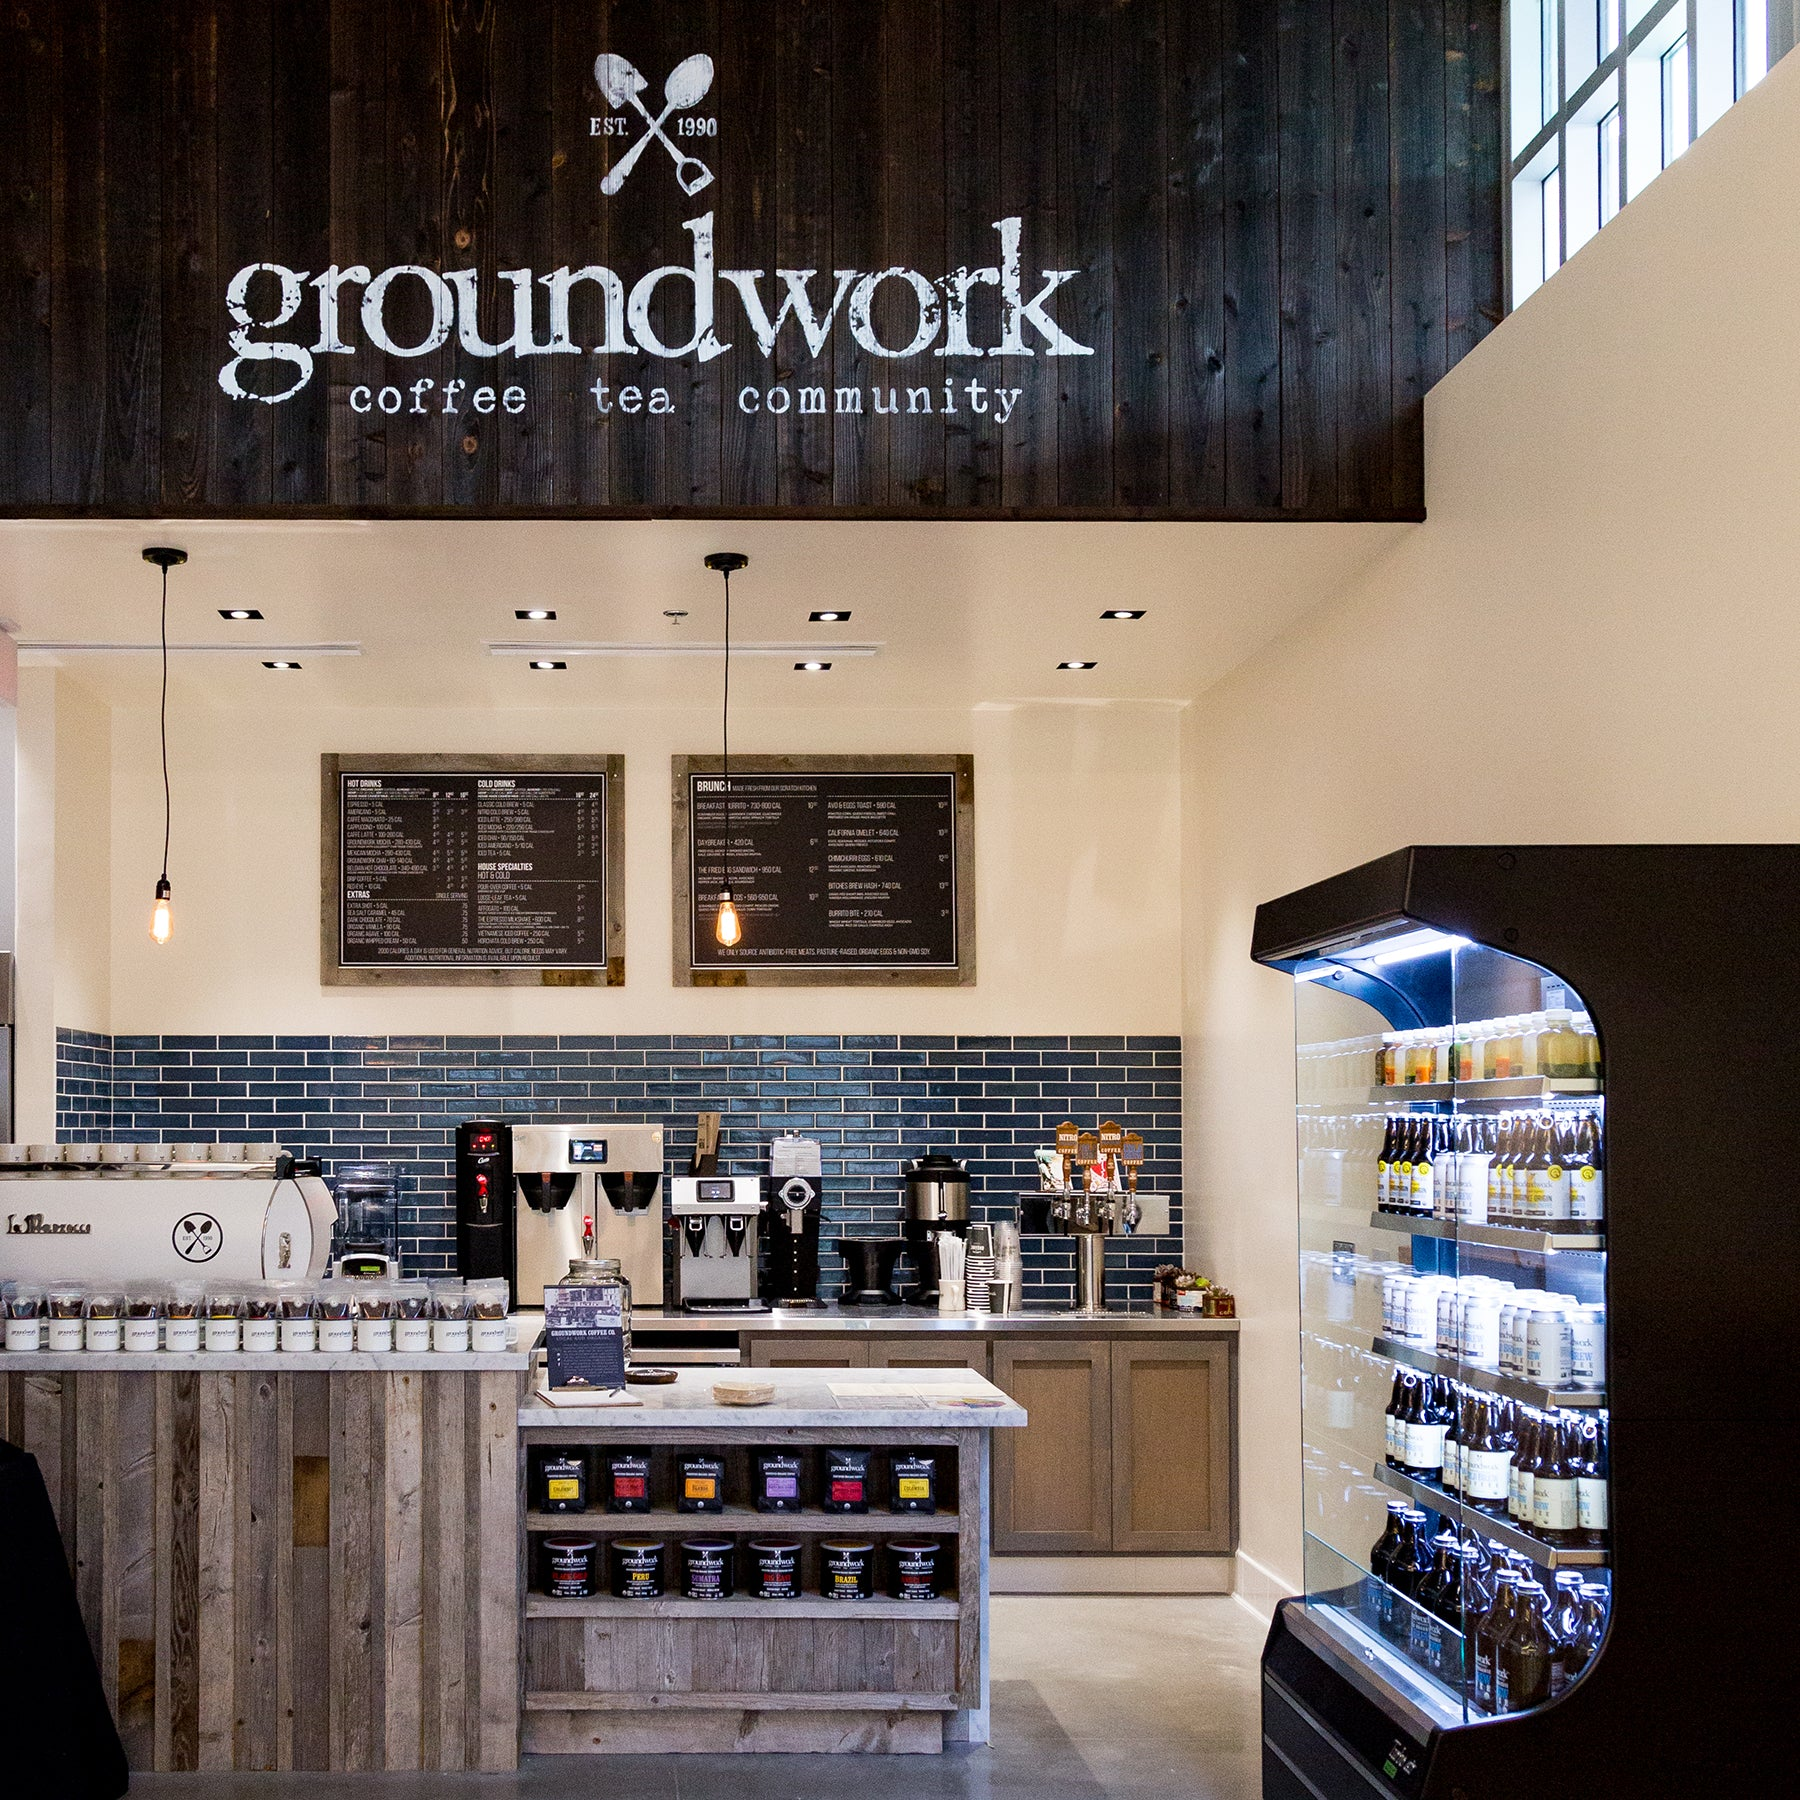 Groundwork Coffee at Whole Foods Market 365 Long Beach